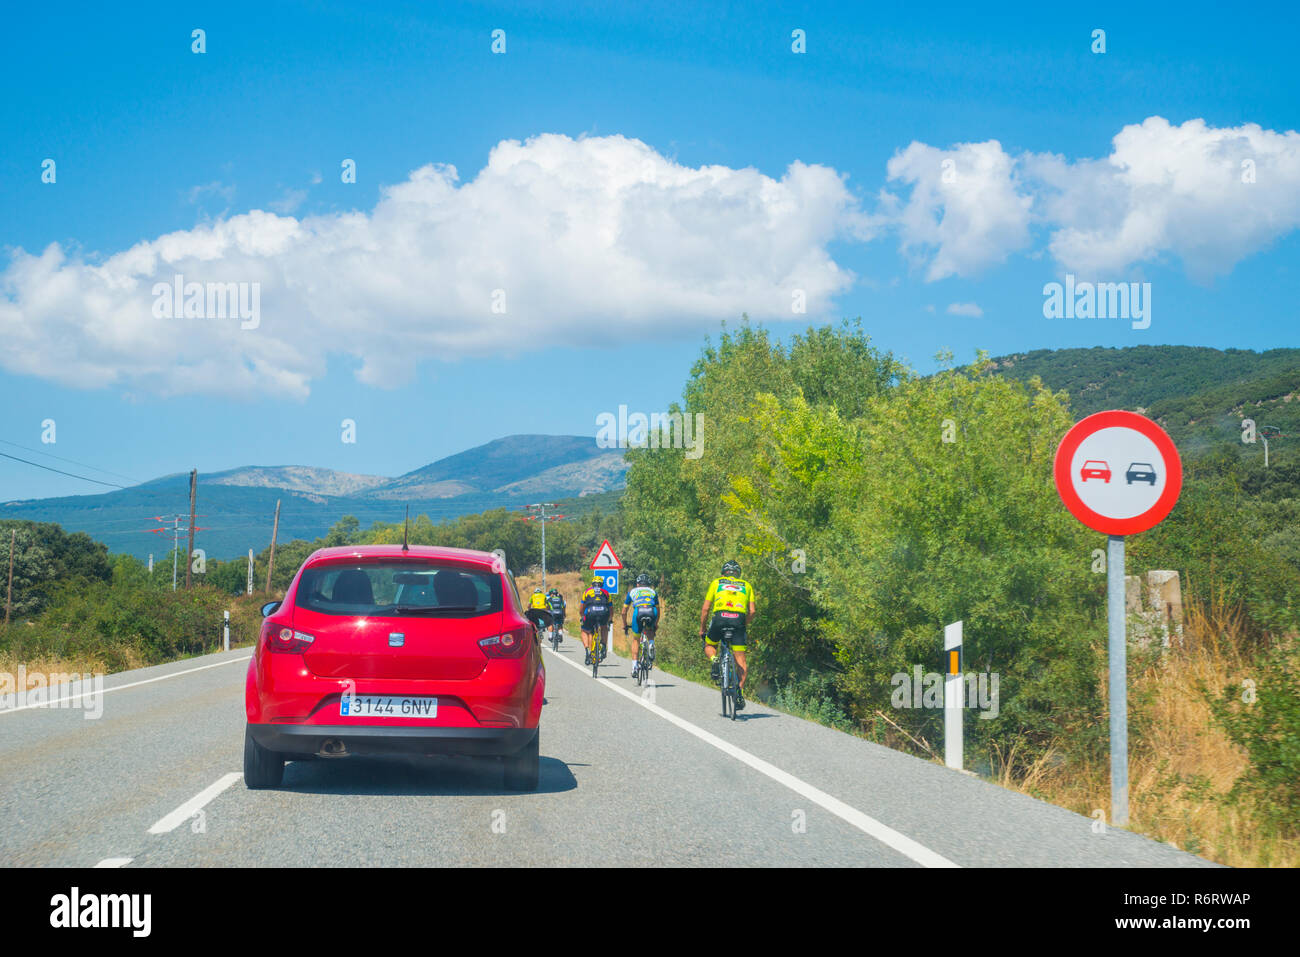 Car overtaking a group of cyclists with prohibition traffic sign. - Stock Image